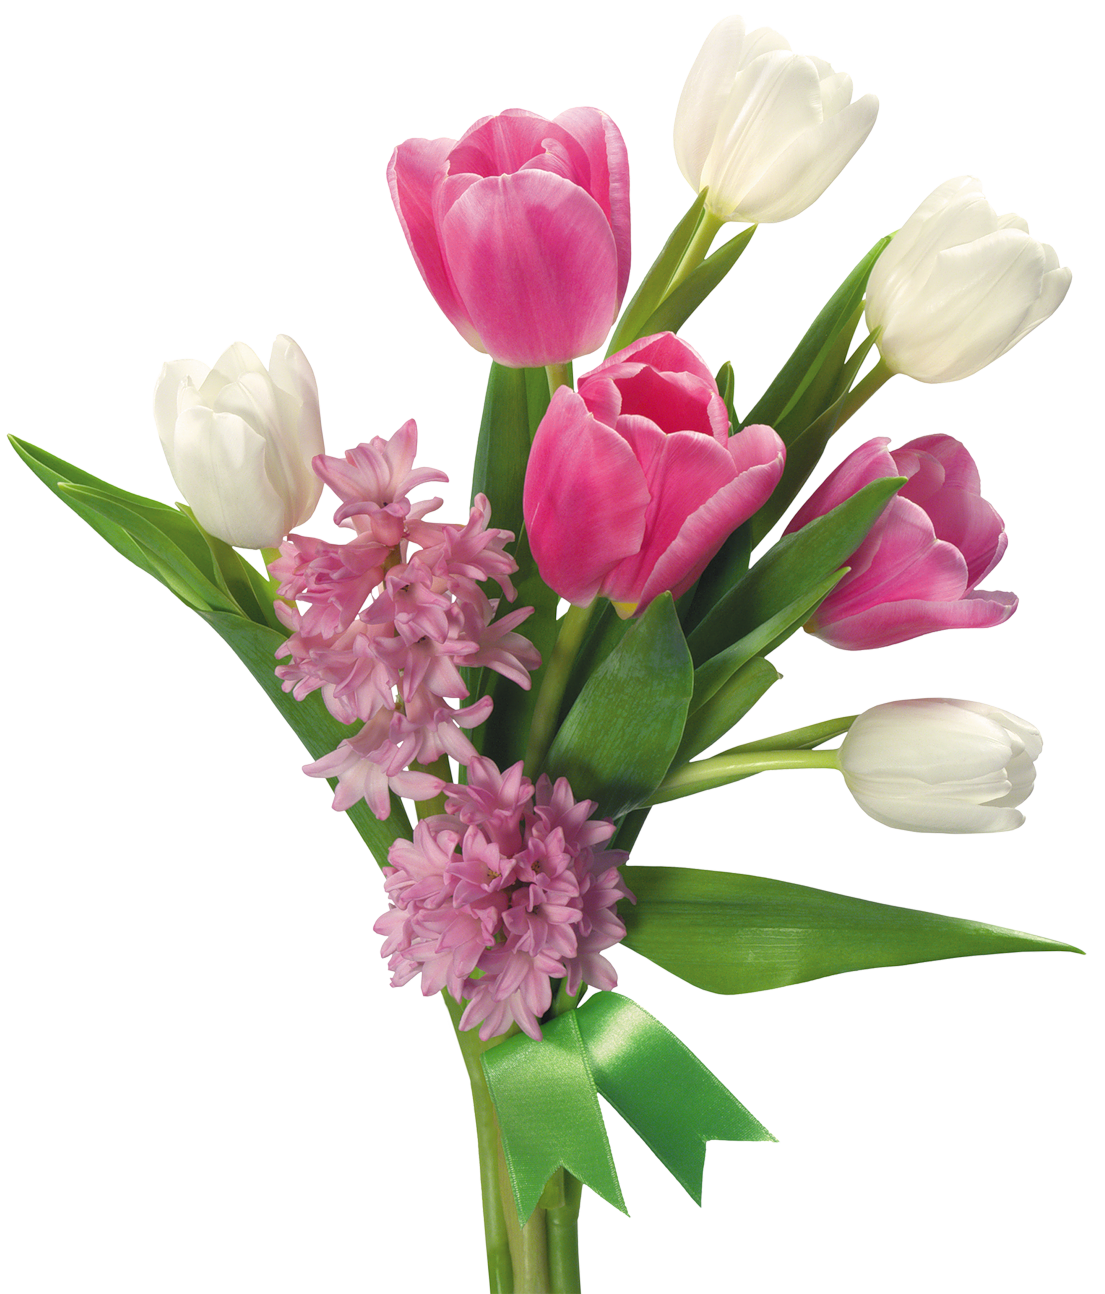 1105x1294 Spring Clipart Spring Flower Bouquet